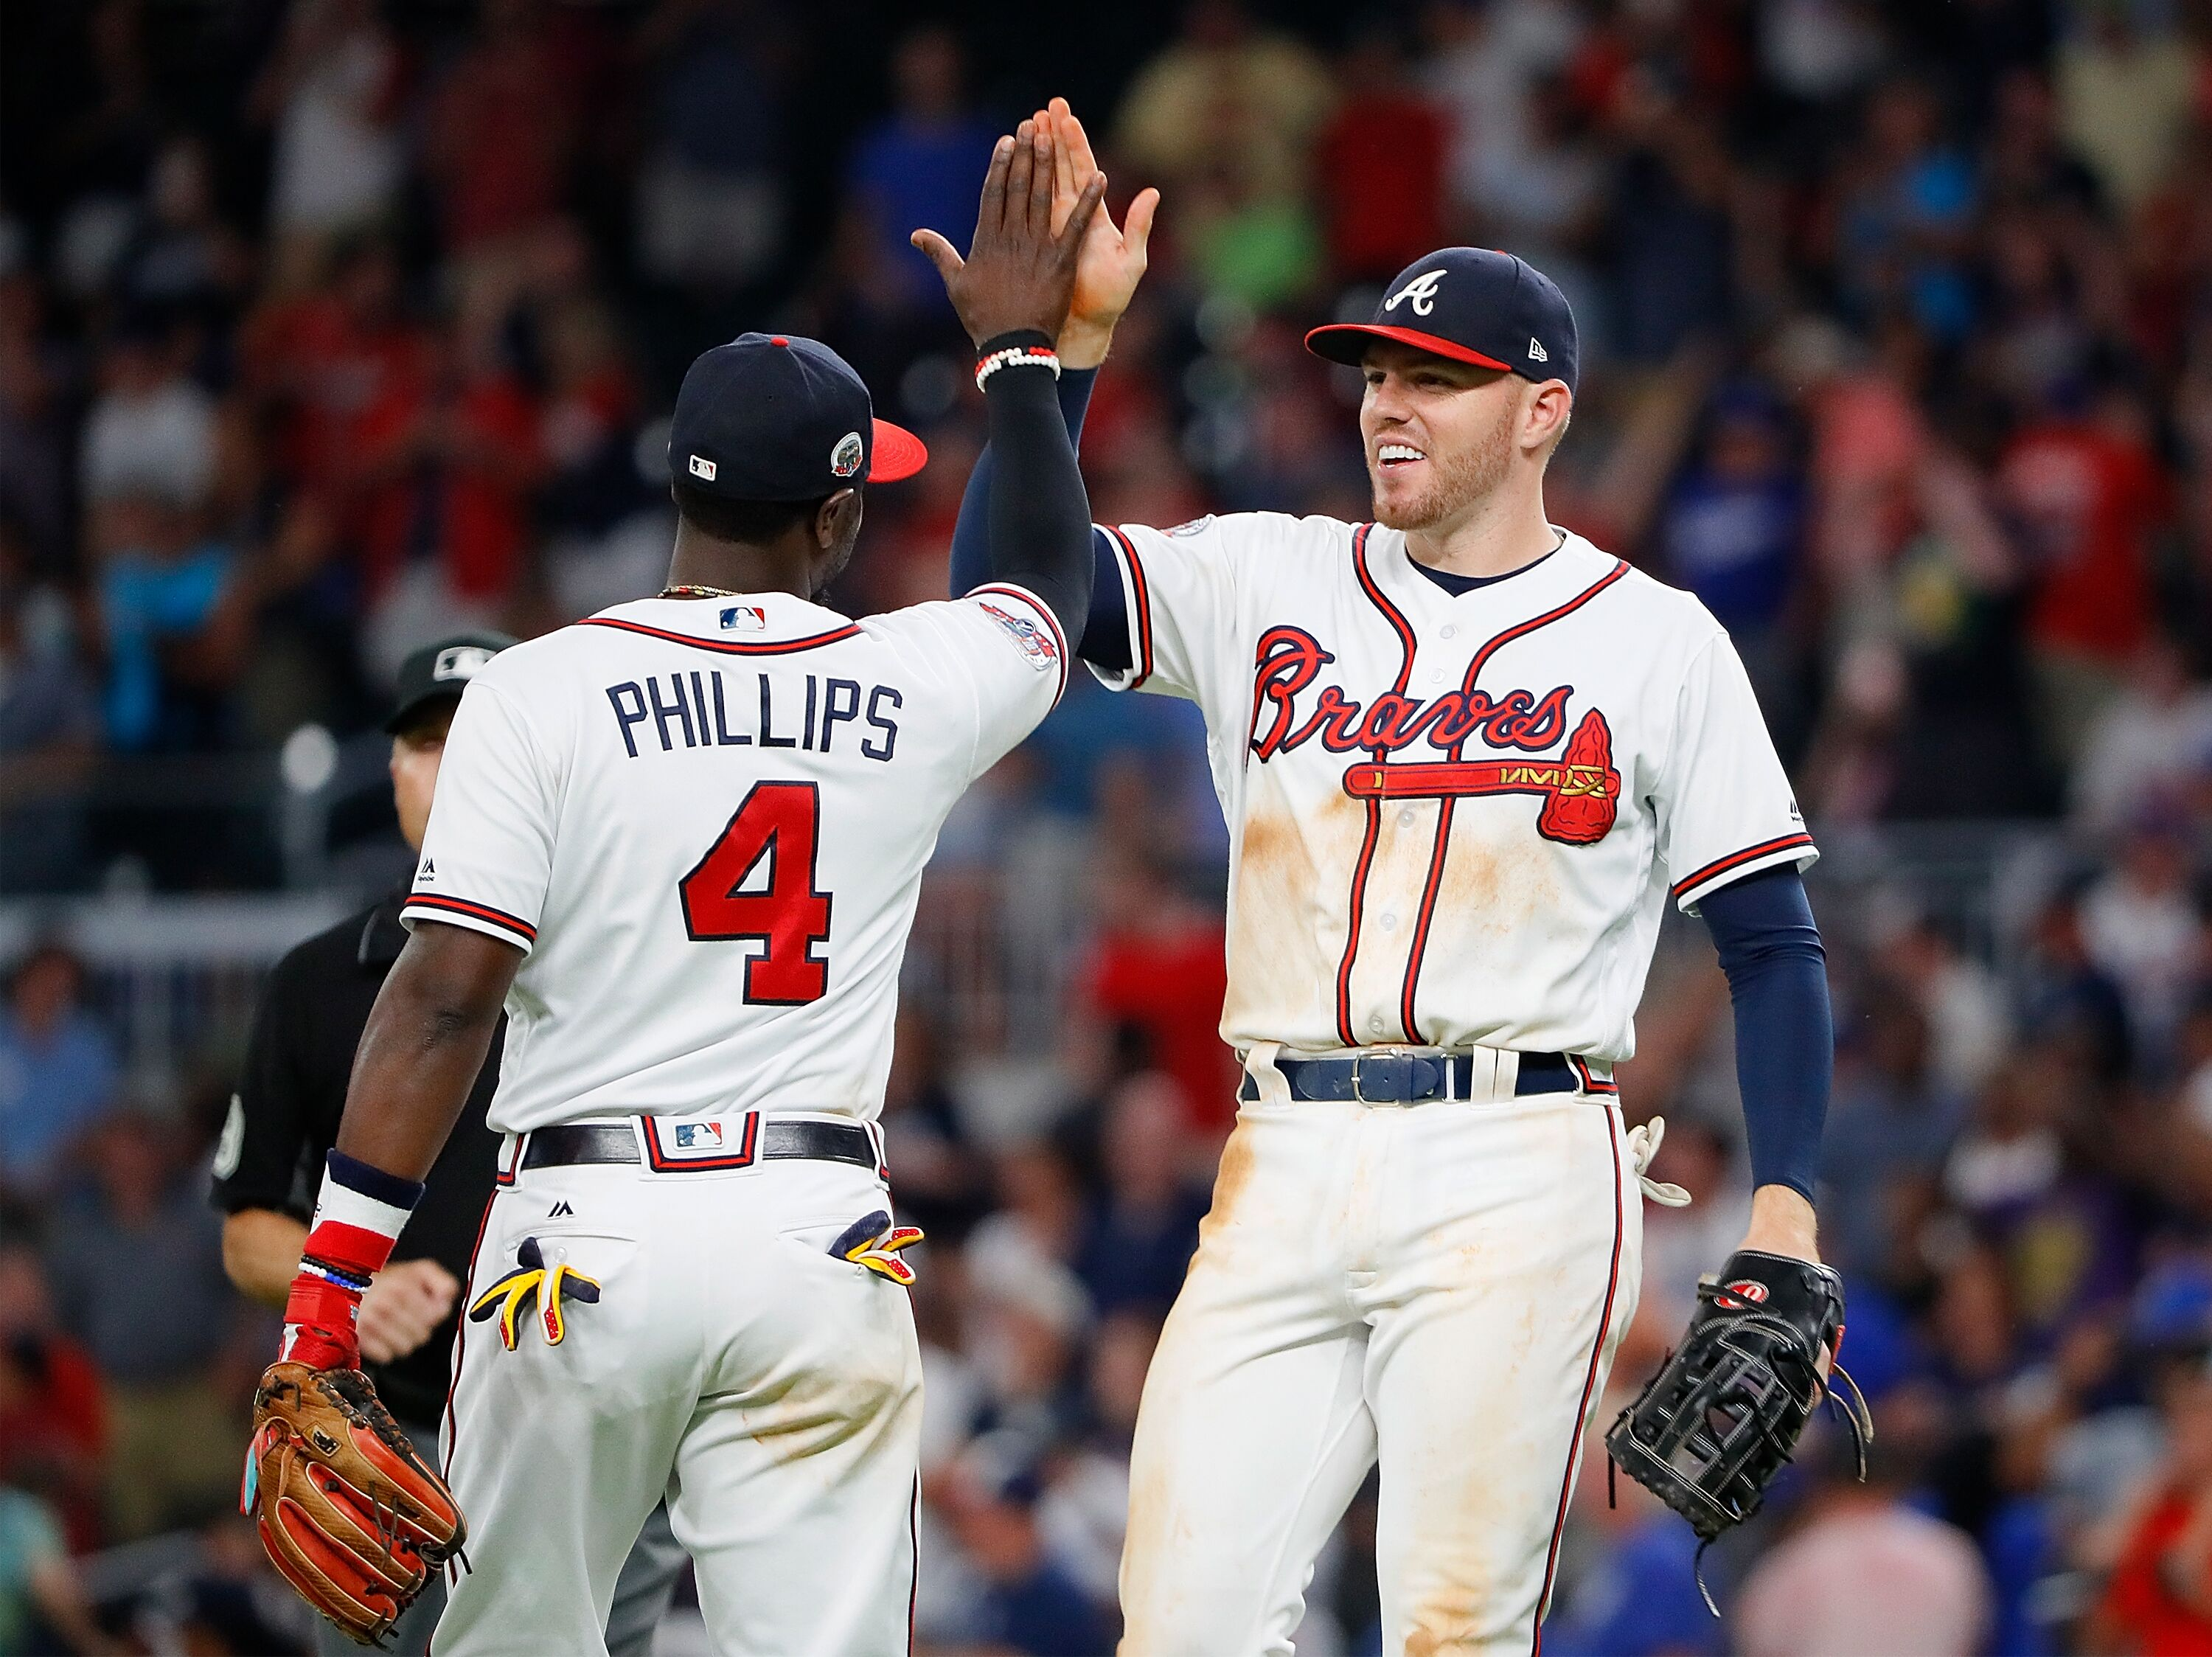 The Atlanta Braves ended a 53 game streak…the longest streak in MLB history!